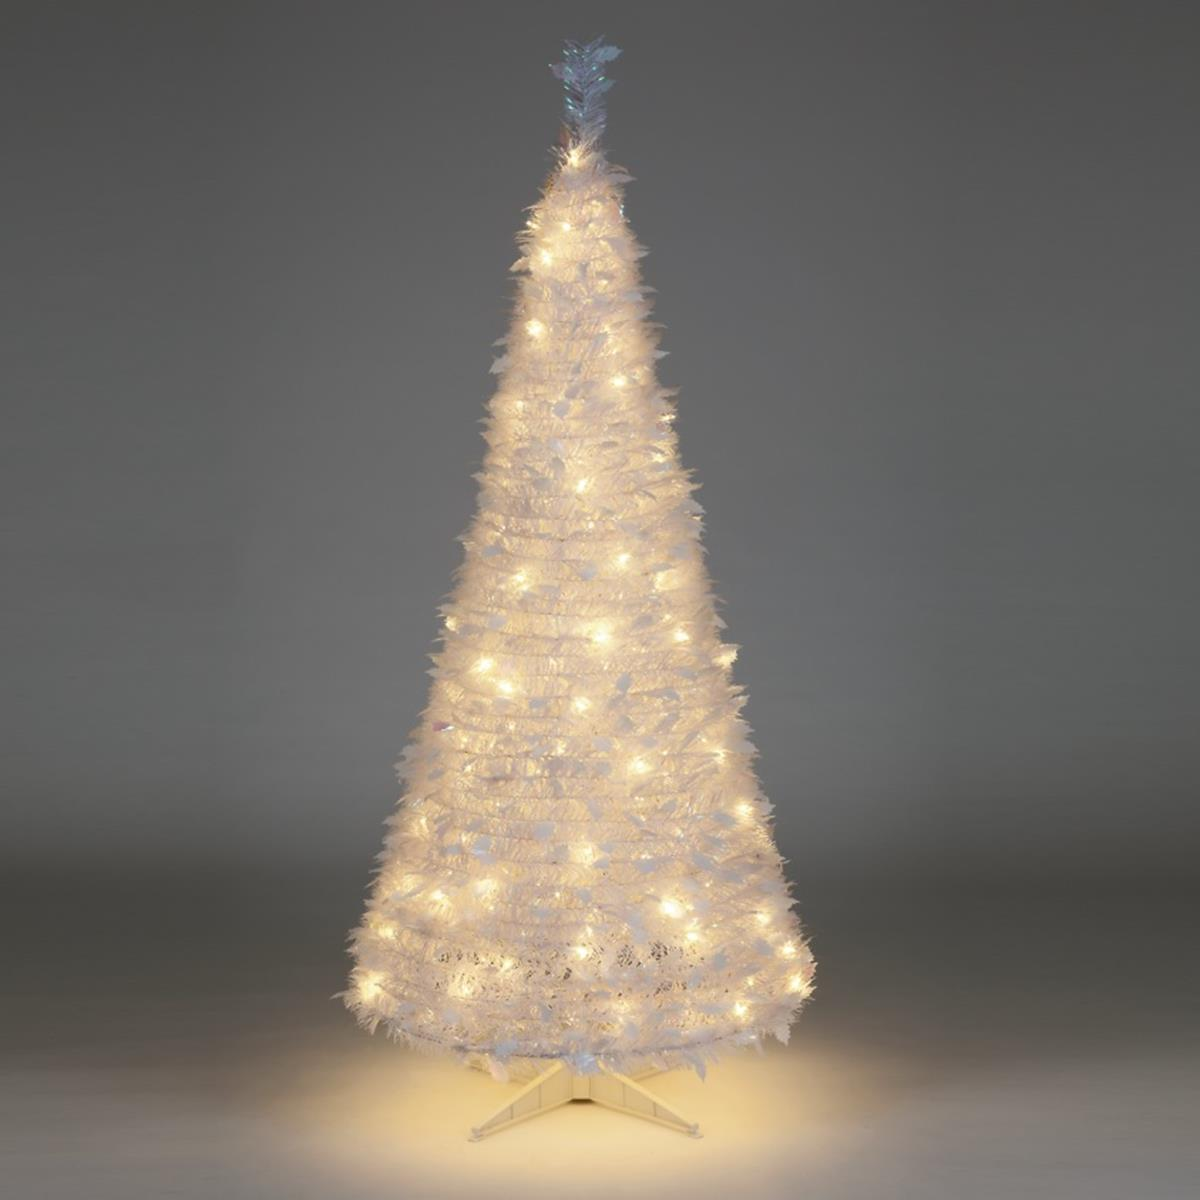 6ft Pre Lit White Holly Pop Up Indoor Christmas Tree (200 Warm White ...